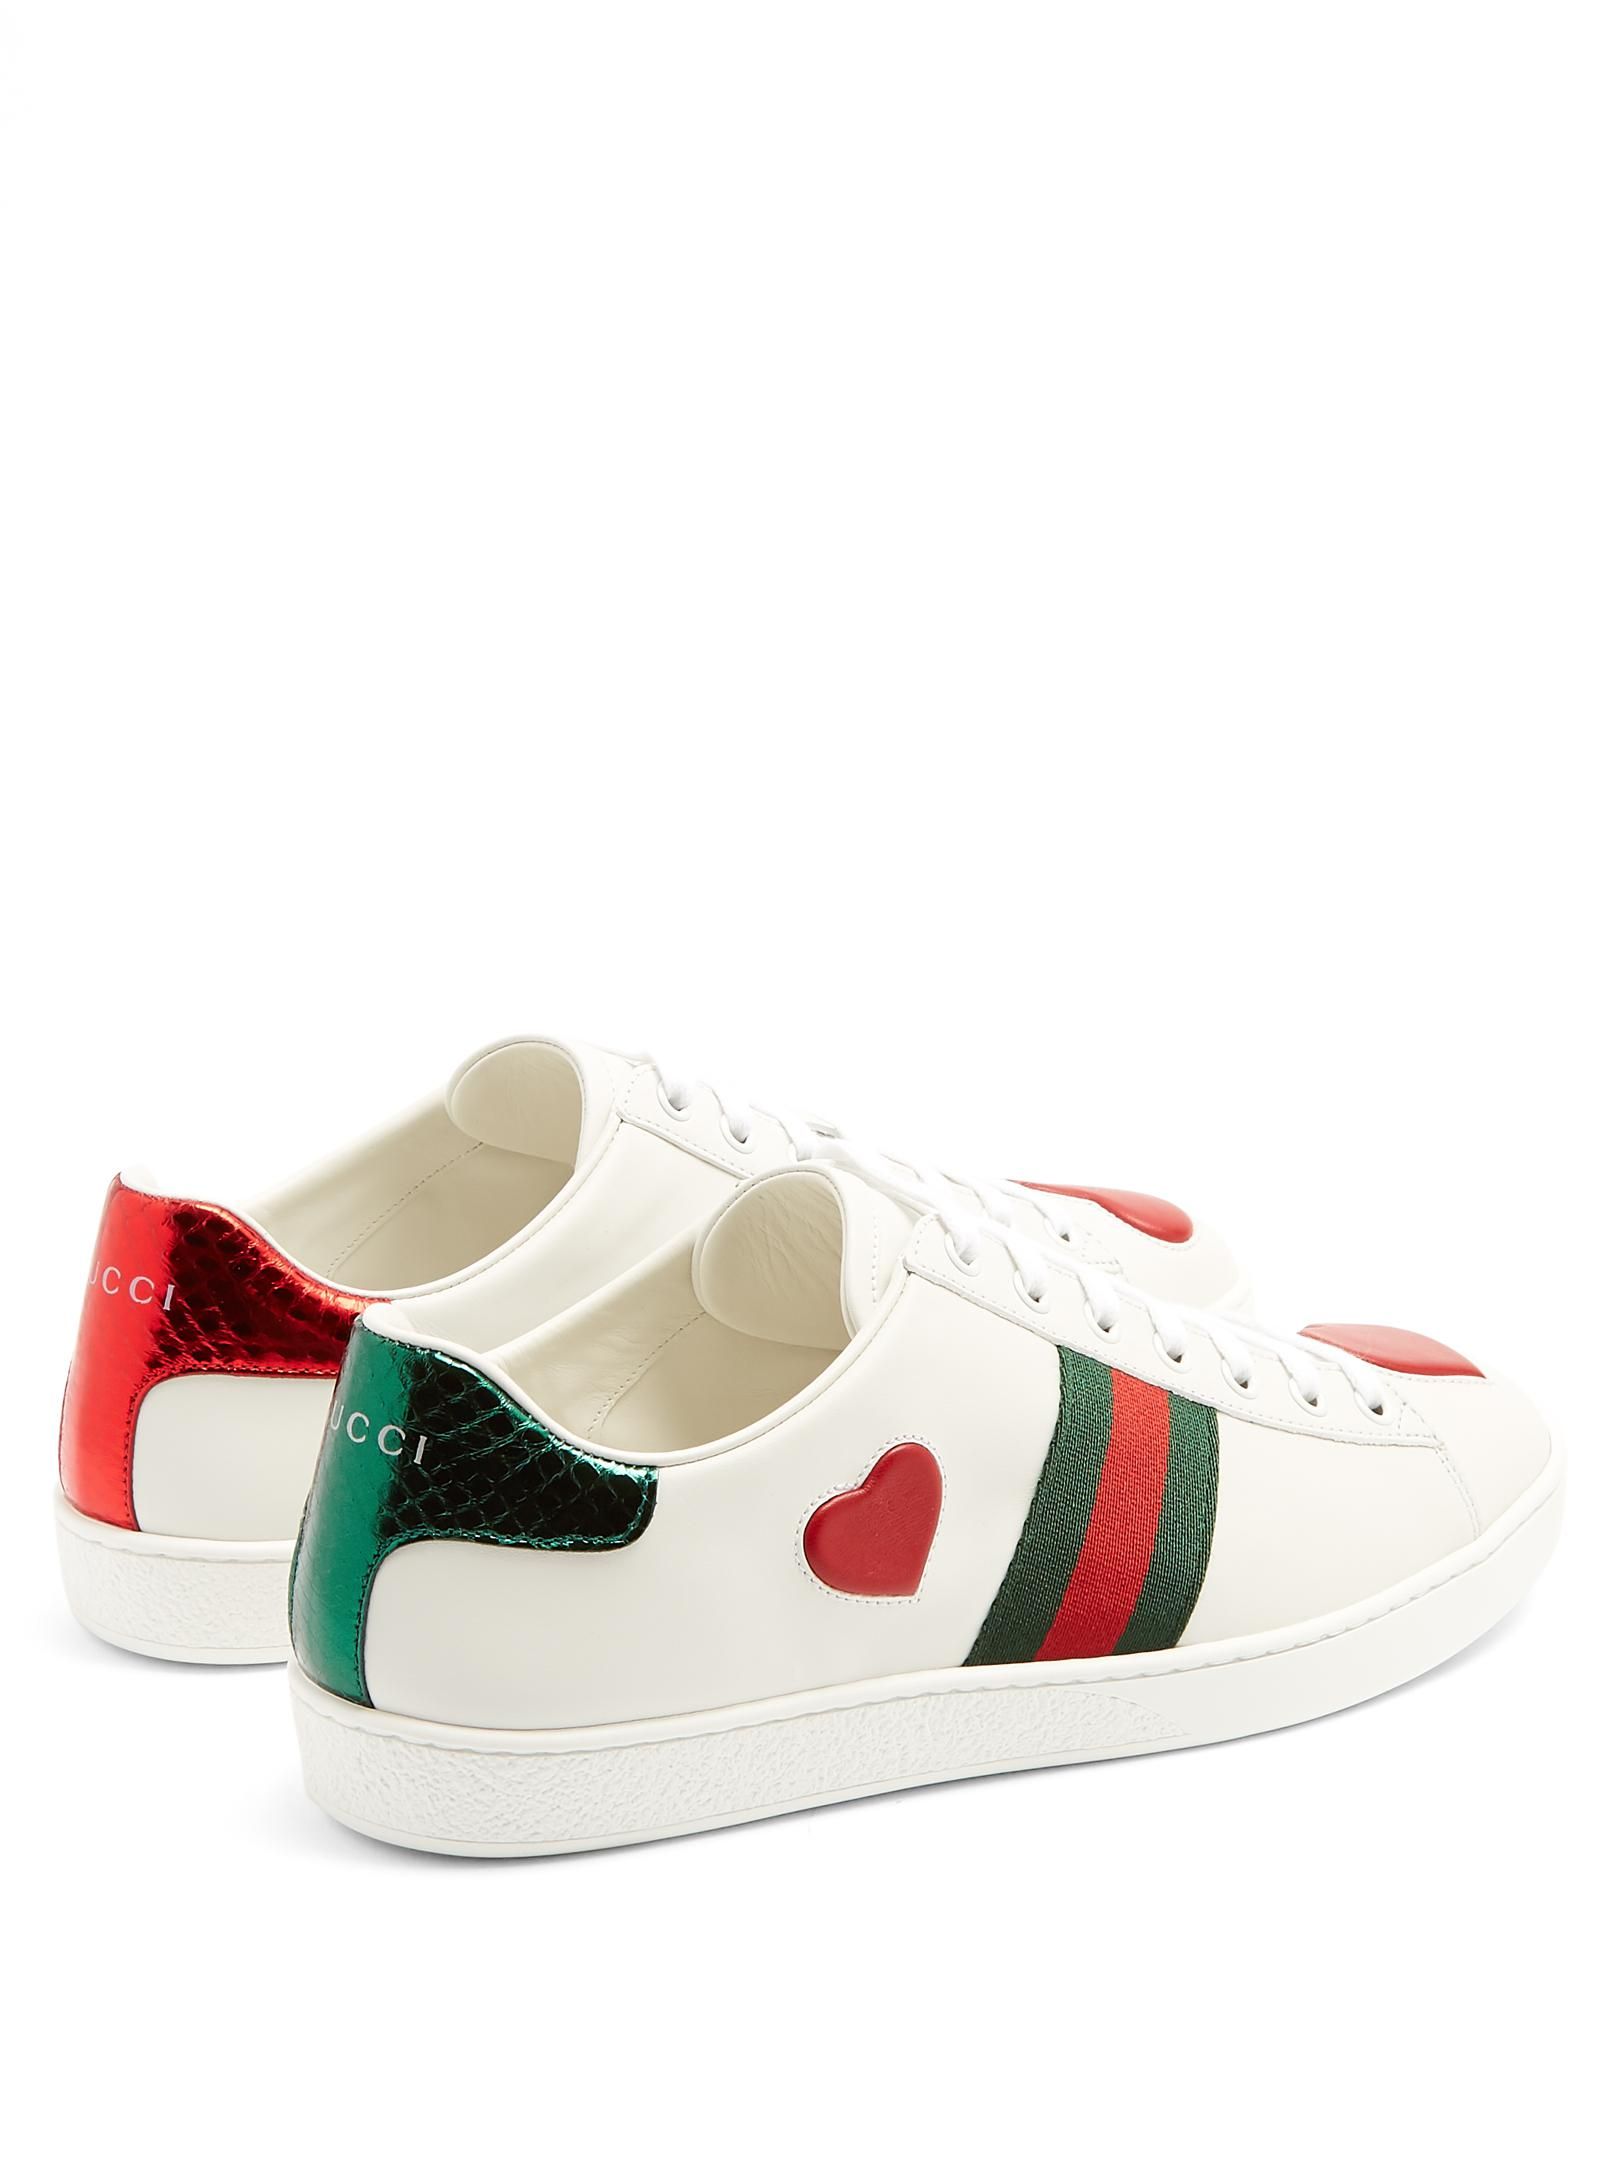 f314ebc1504 Lyst - Gucci New Ace Heart-appliqué Leather Trainers in White